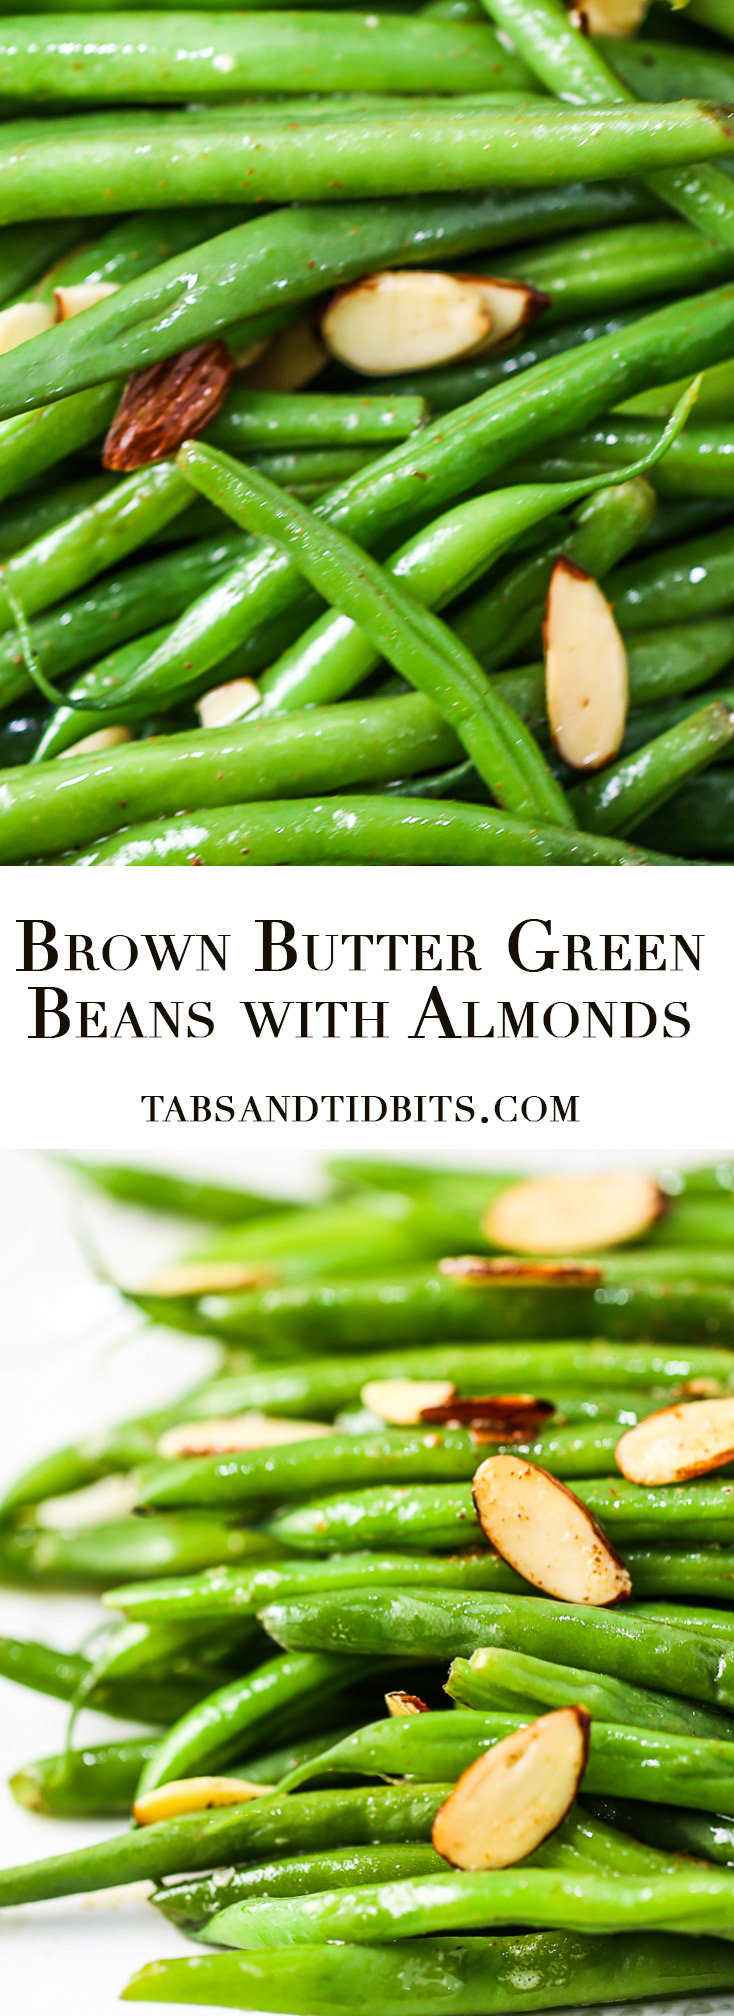 Brown Butter Green Beans with Almonds - Green beans coated with nutty and rich brown butter and sliced almonds to add more delicious texture!